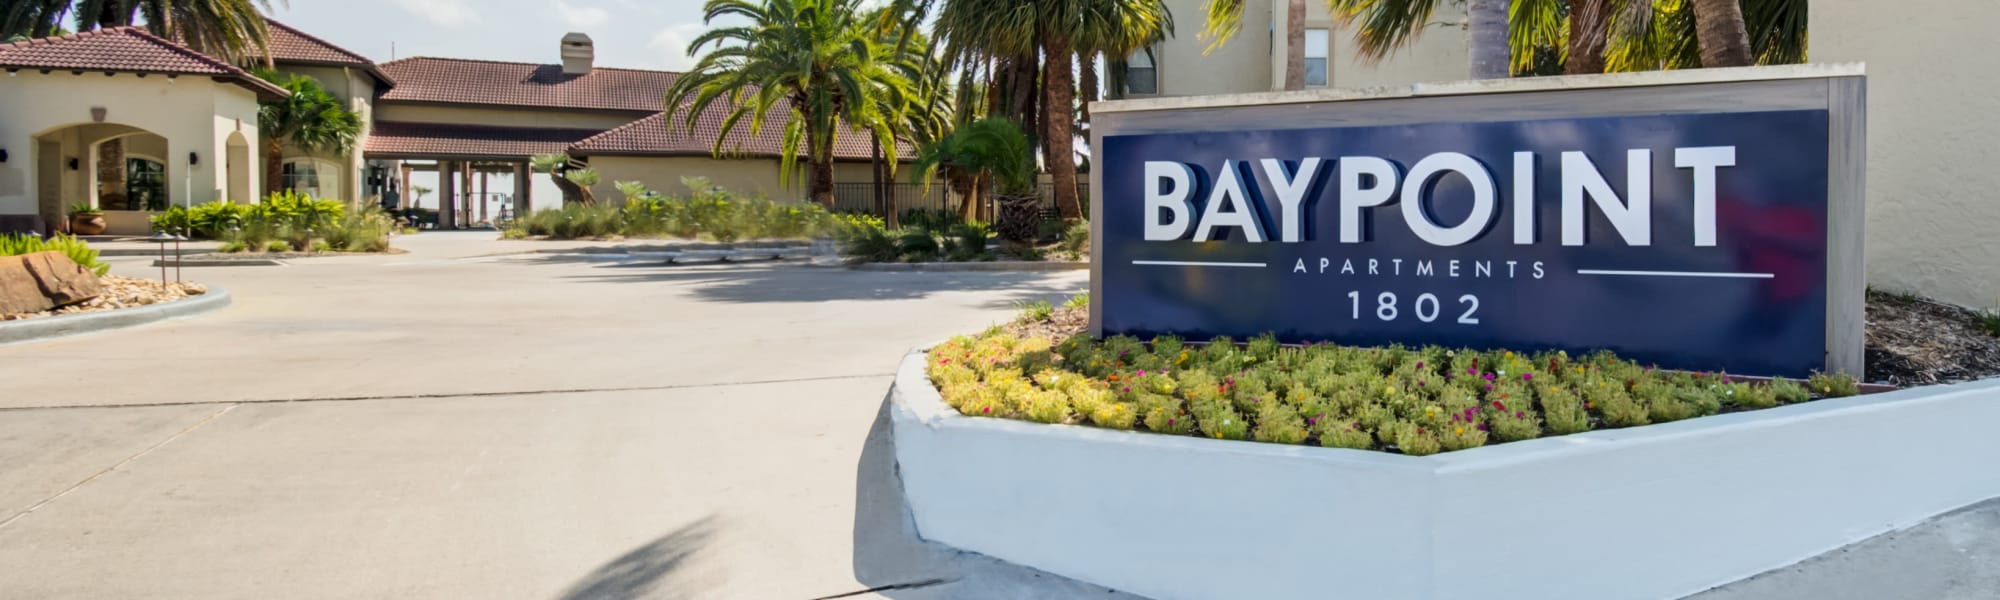 Resident resources at Baypoint in Corpus Christi, Texas